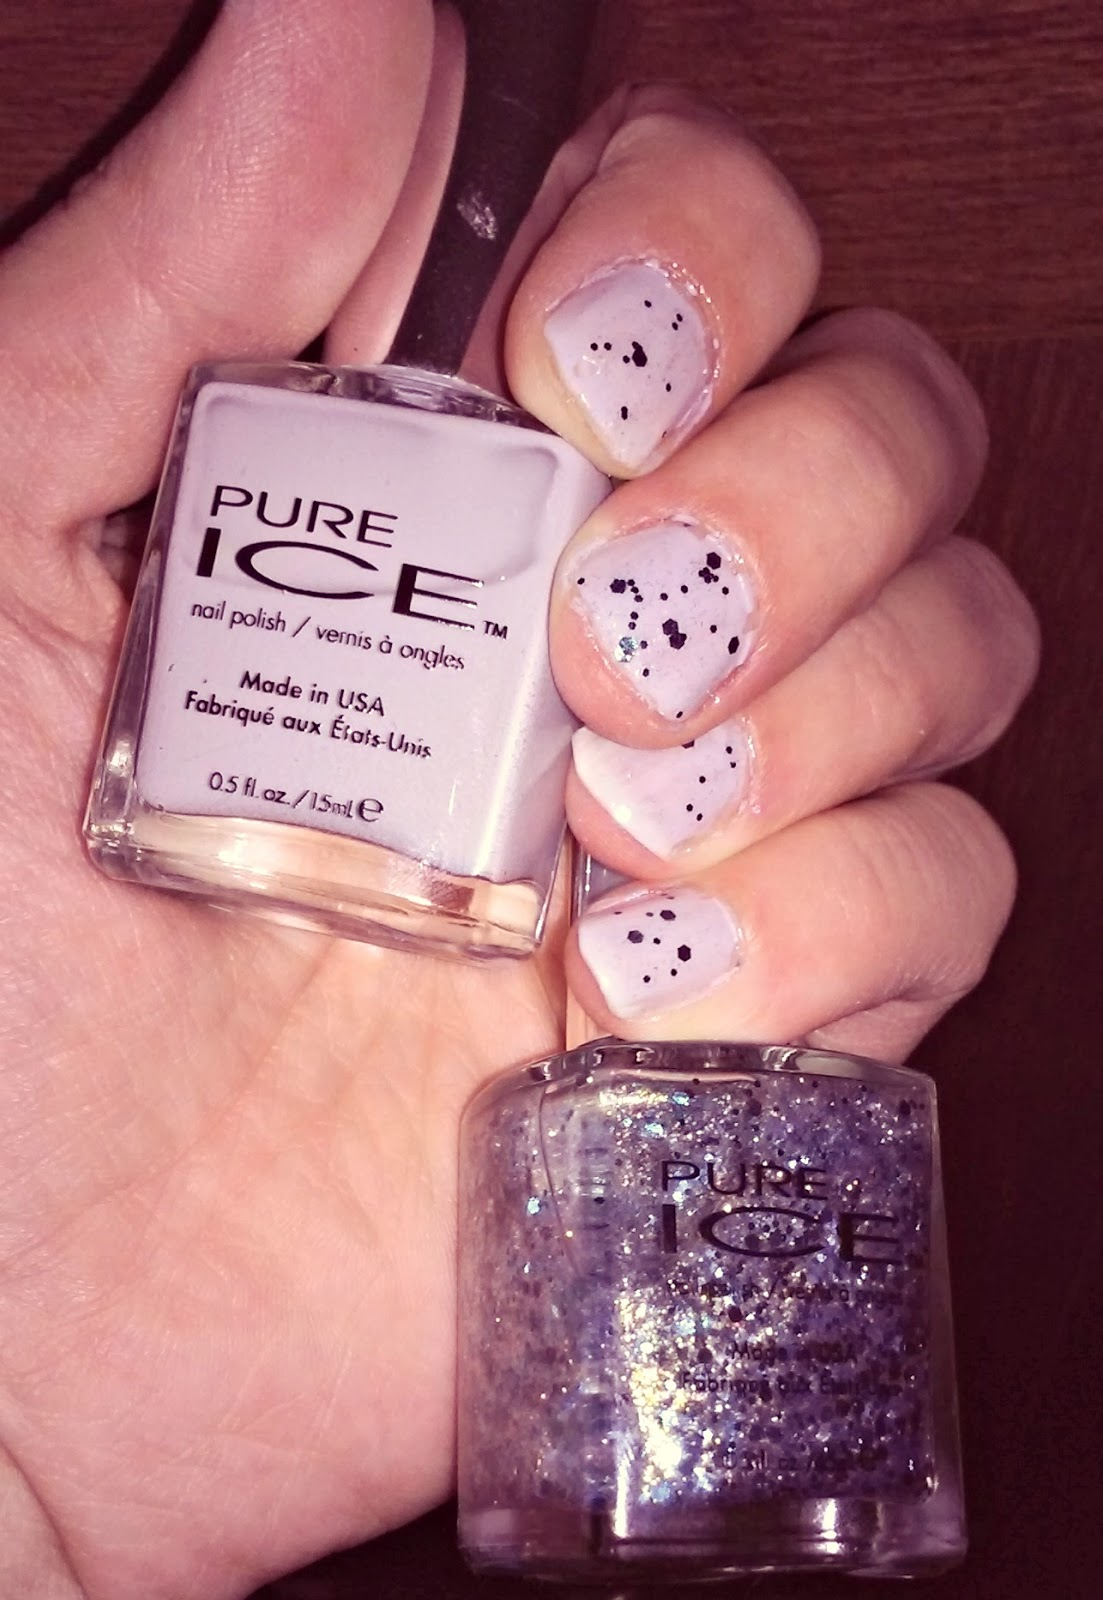 Pure Ice Nail Polish Review - Momma Without a Clue